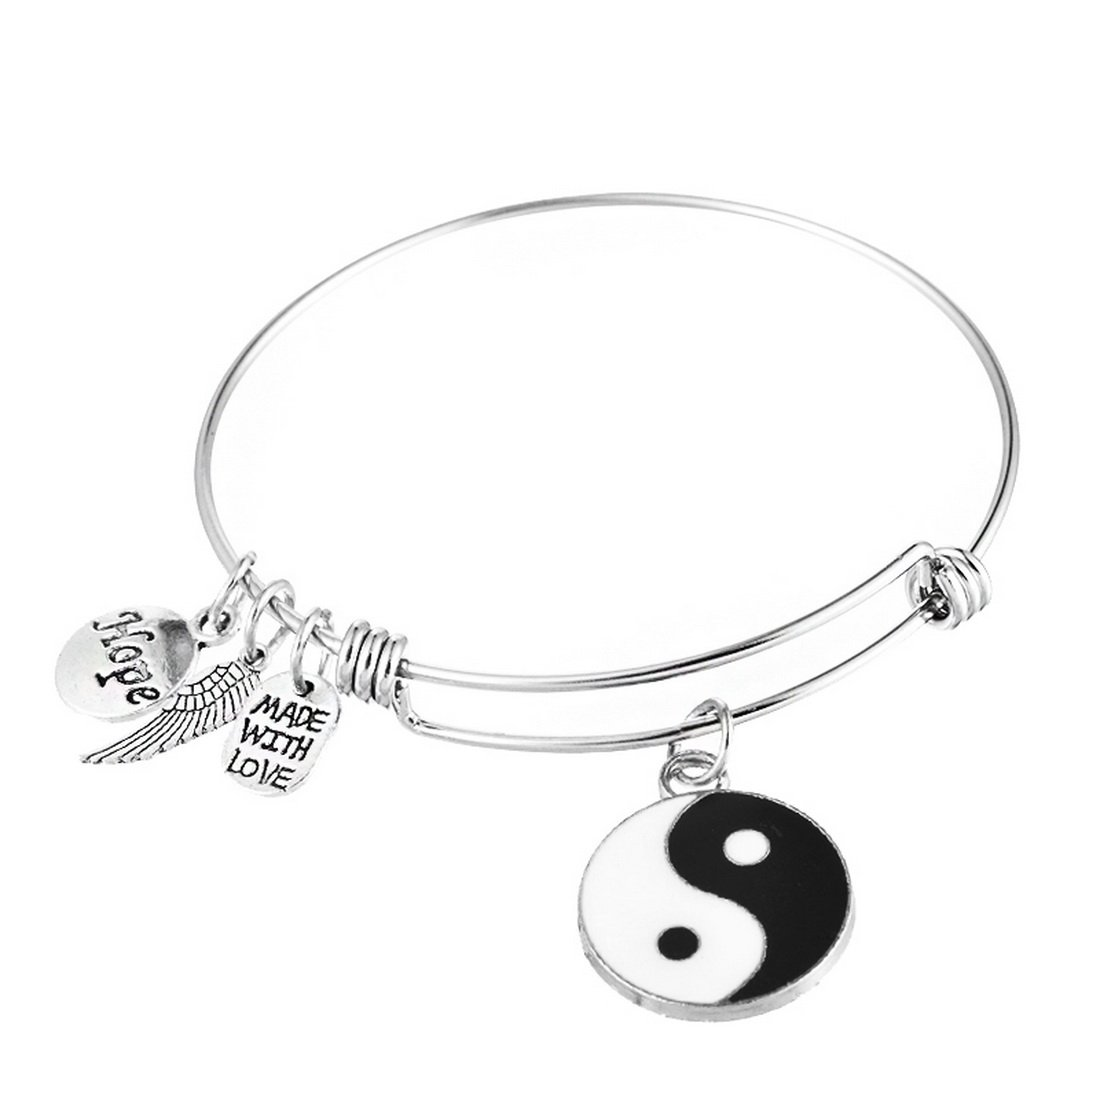 MJartoria Silver Color Buddha Expandable Wire Bangle Charm Bracelet (Yin yang)